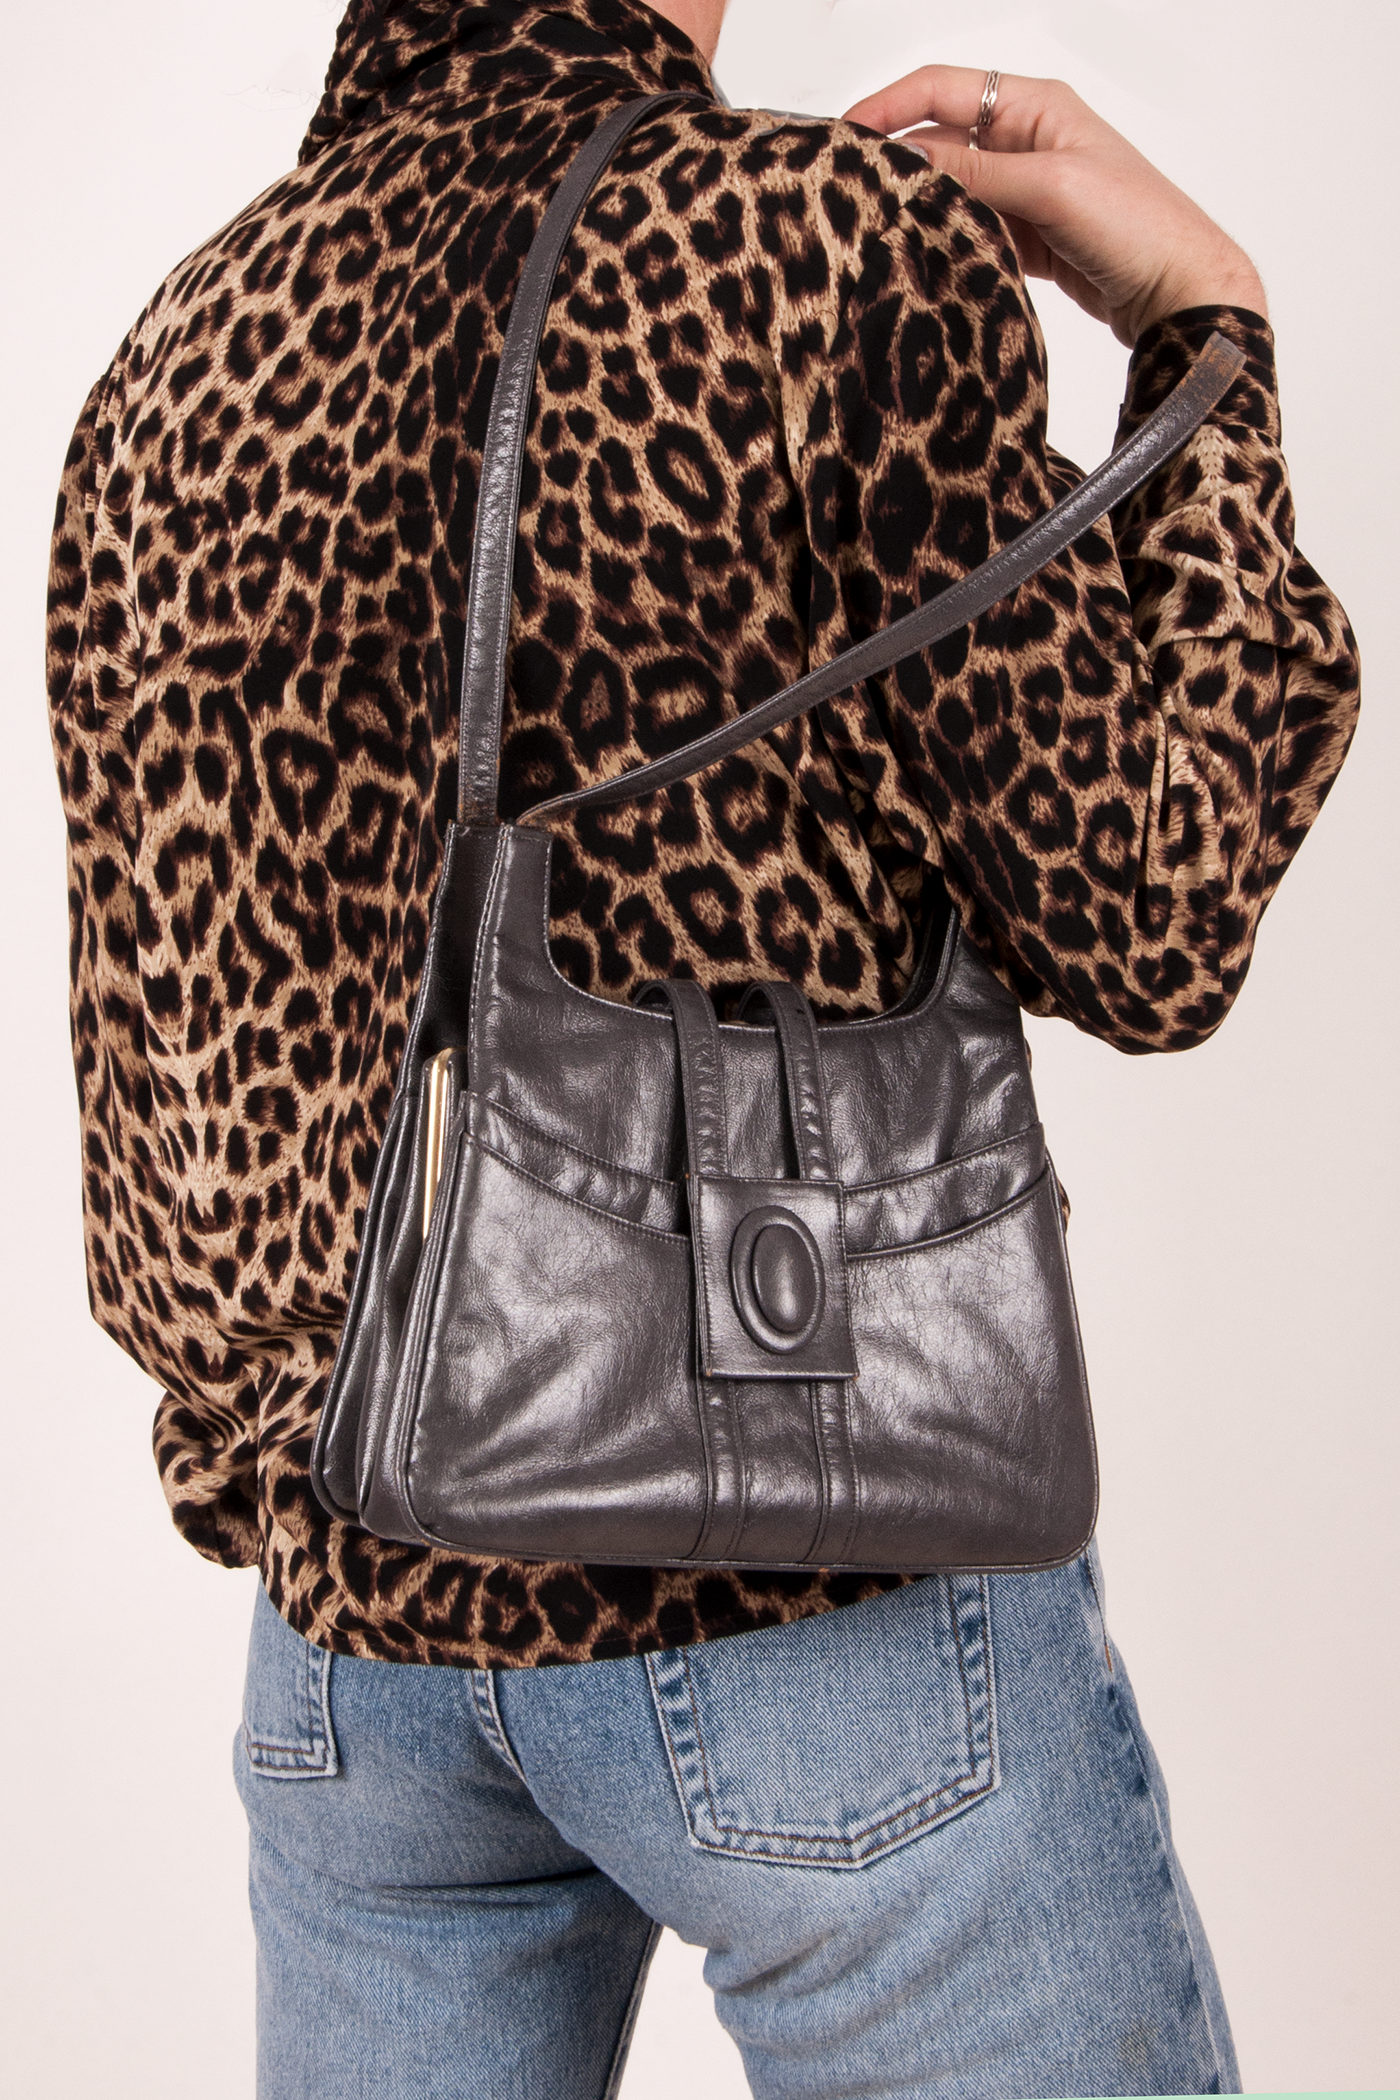 vintage grey leather purse and cheetah shirt